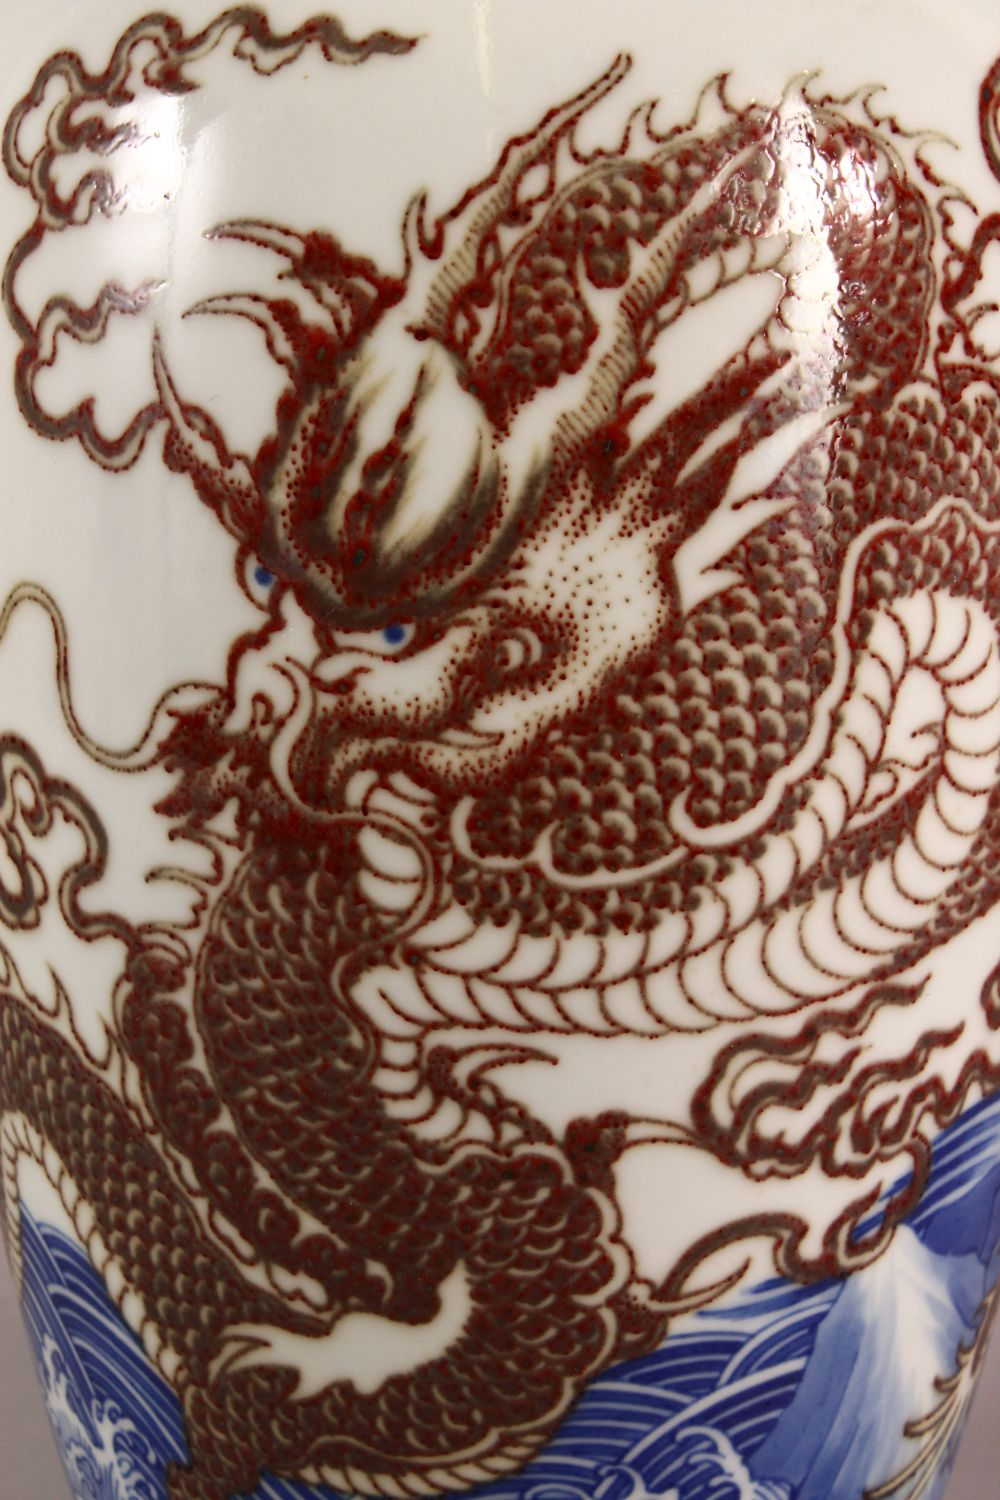 A LARGE CHINESE UNDERGLAZE BLUE & COPPER RED PORCELAIN VASE, decorated with dragons amongst waves, - Image 2 of 7